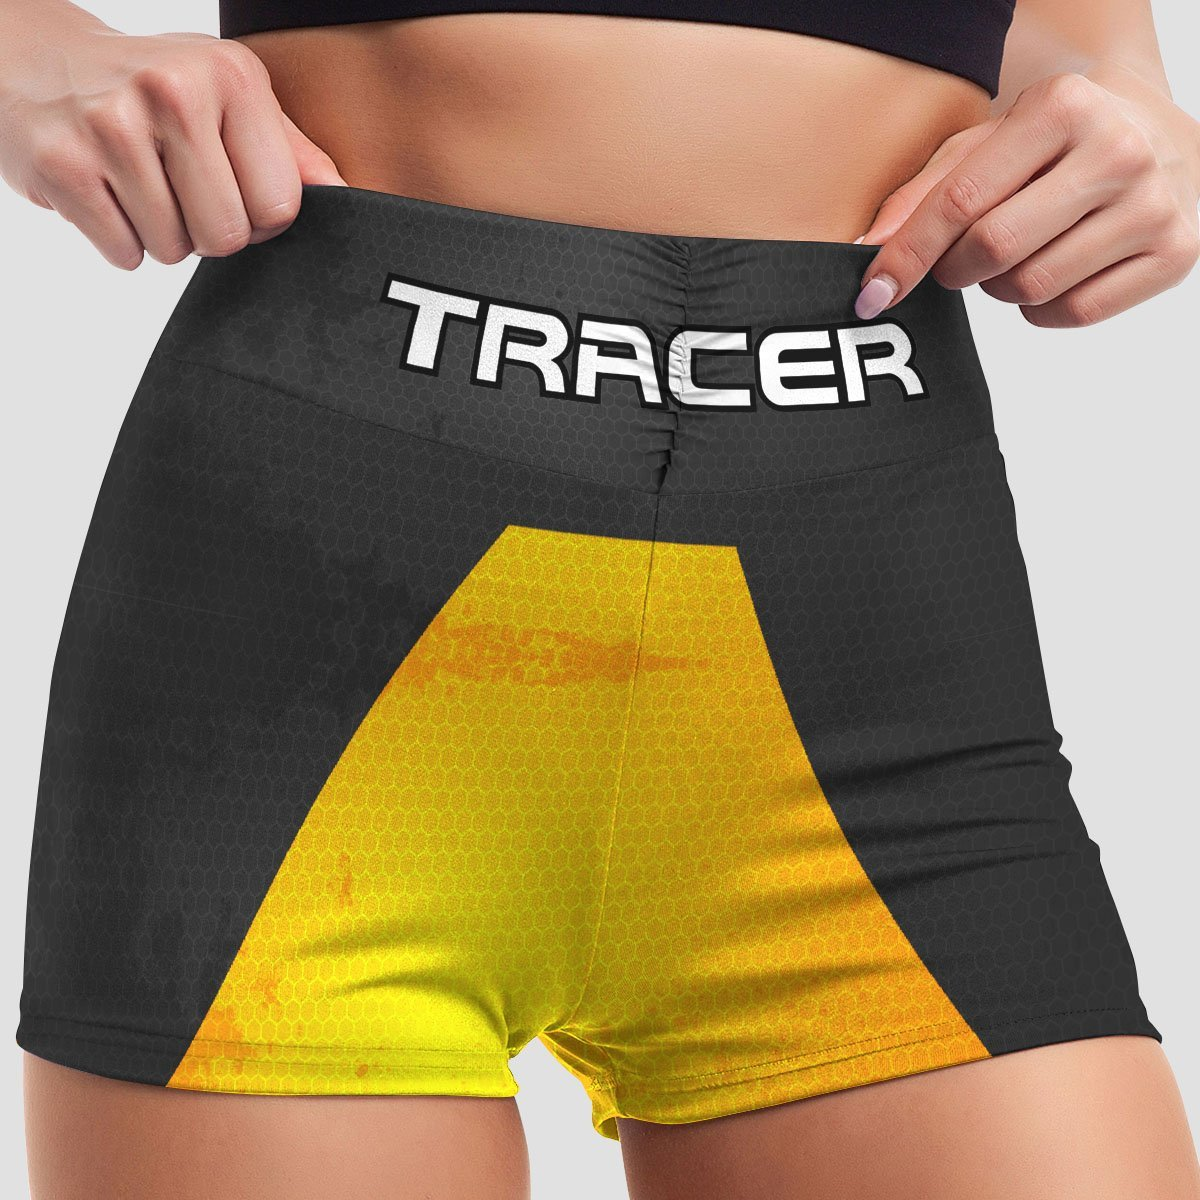 tracer summer active wear set 269627 - Anime Swimsuits